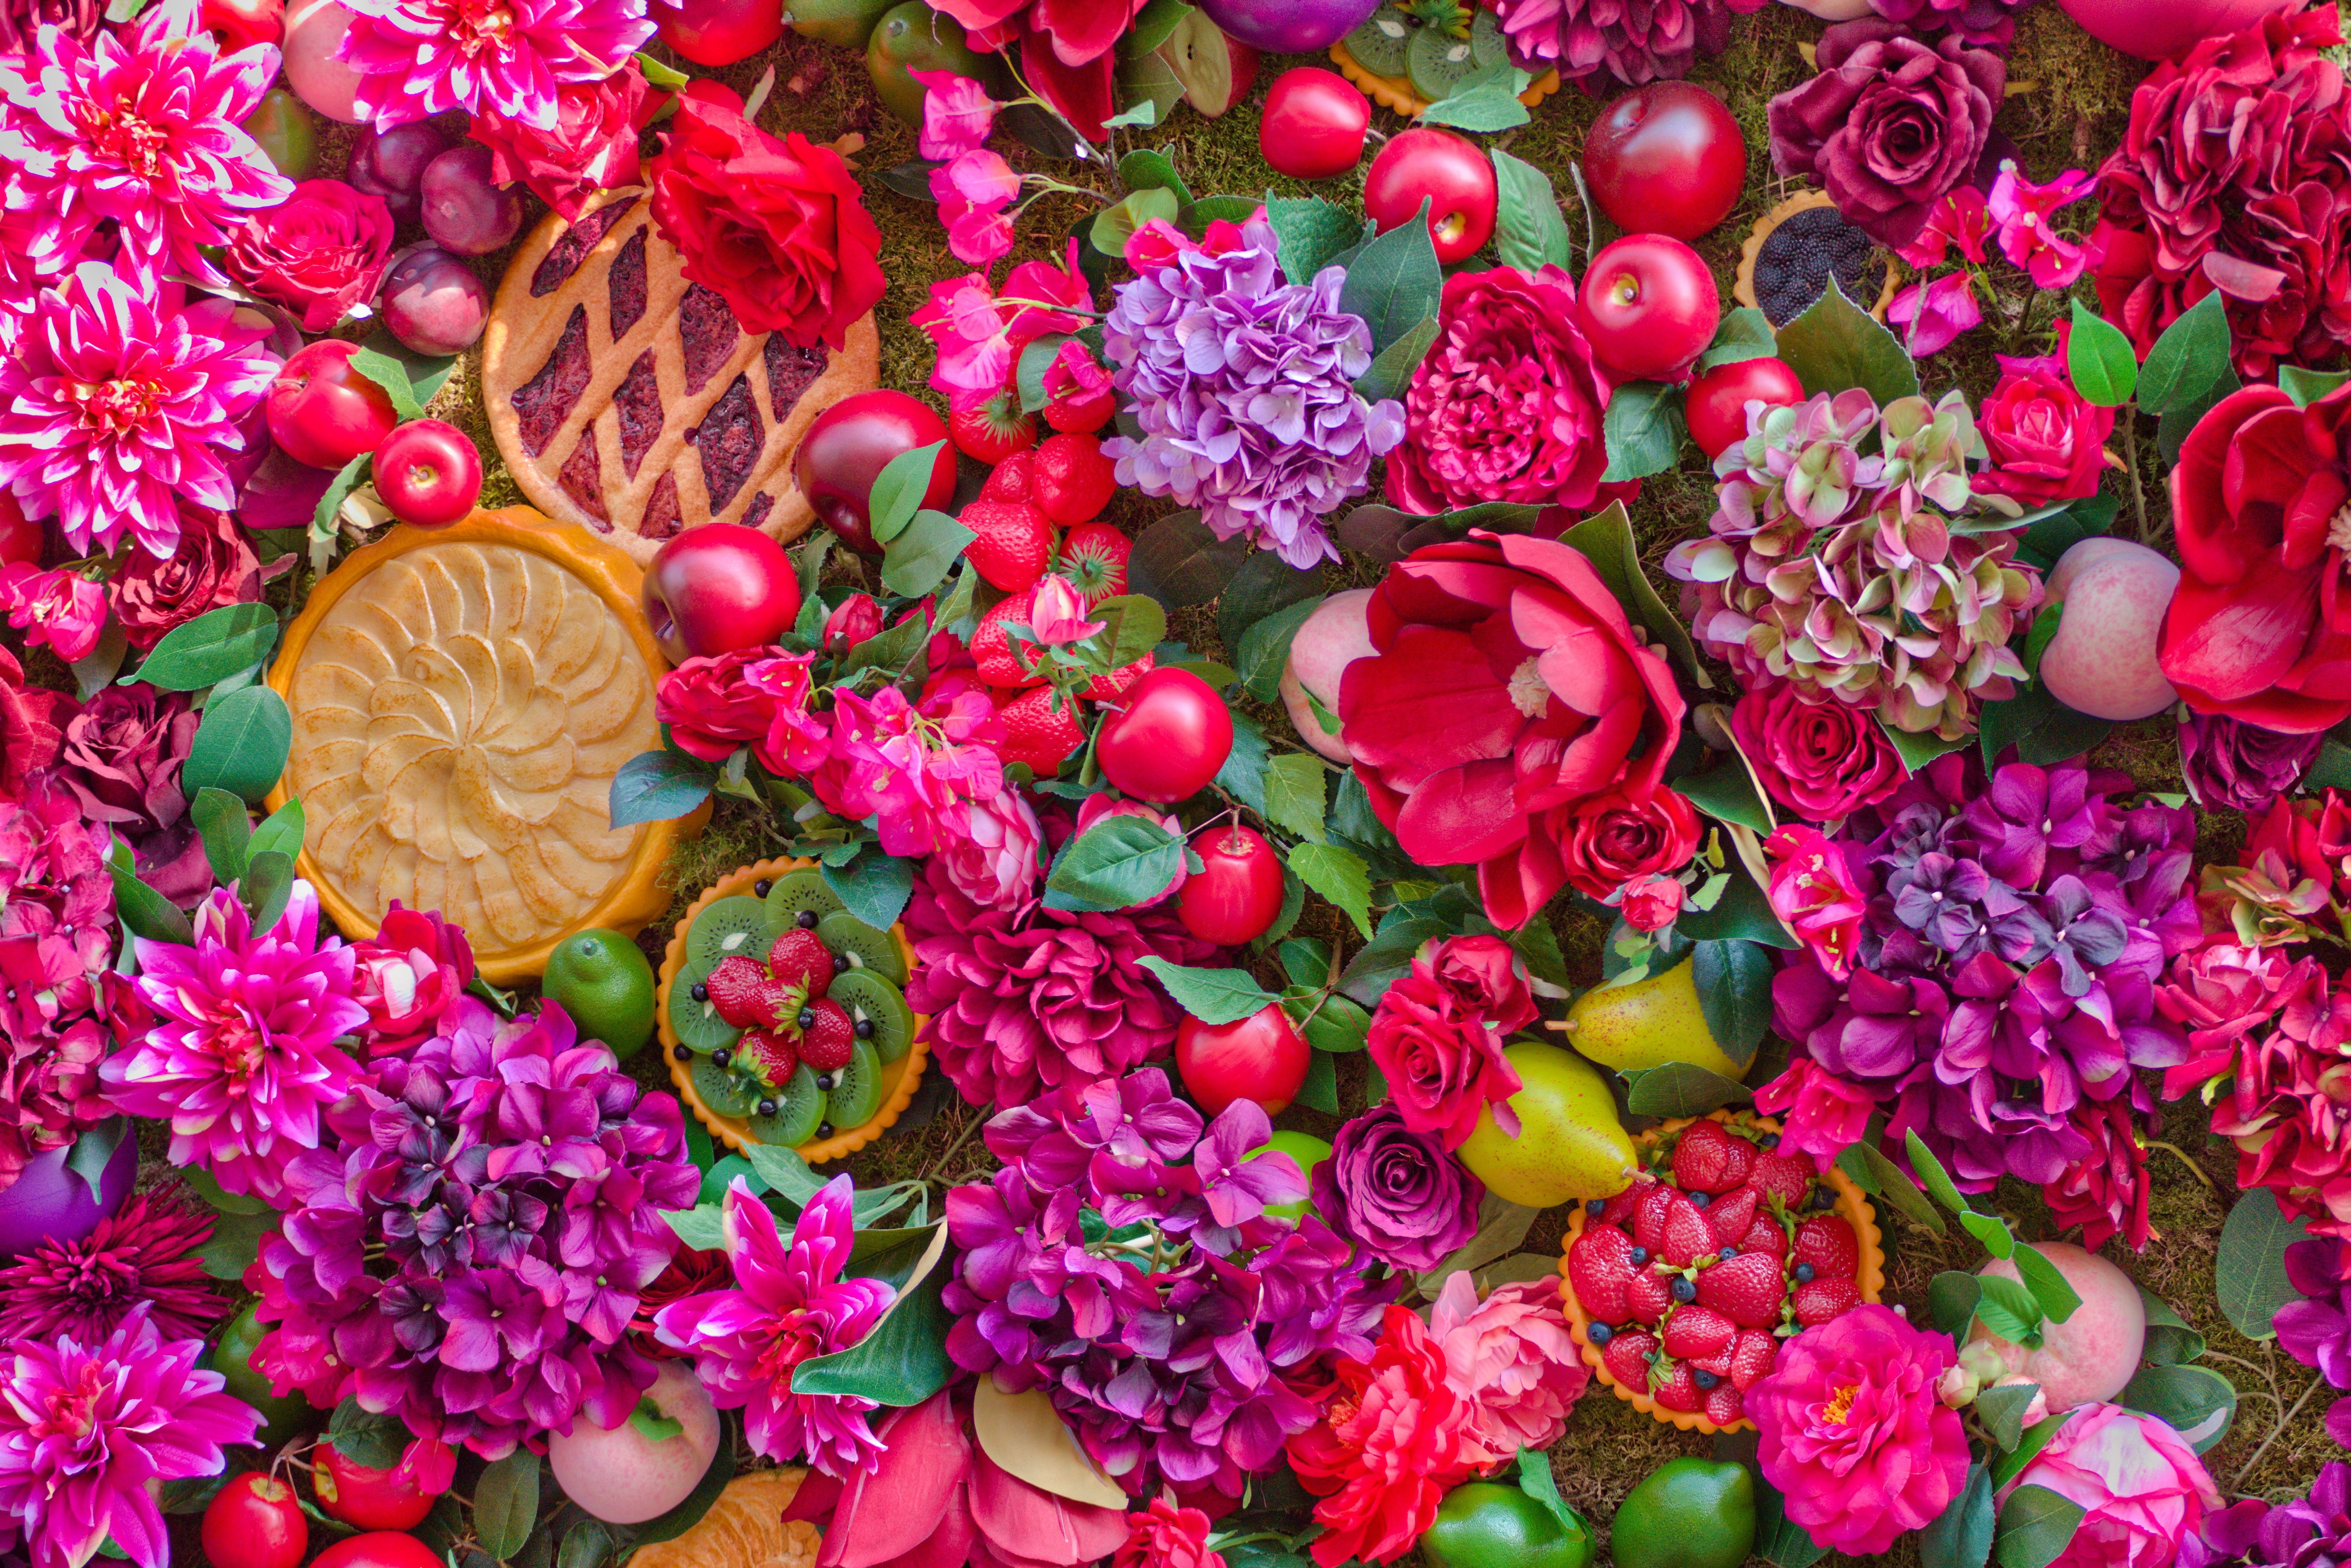 125690 download wallpaper Fruits, Flowers, Summer, Still Life, Cakes screensavers and pictures for free